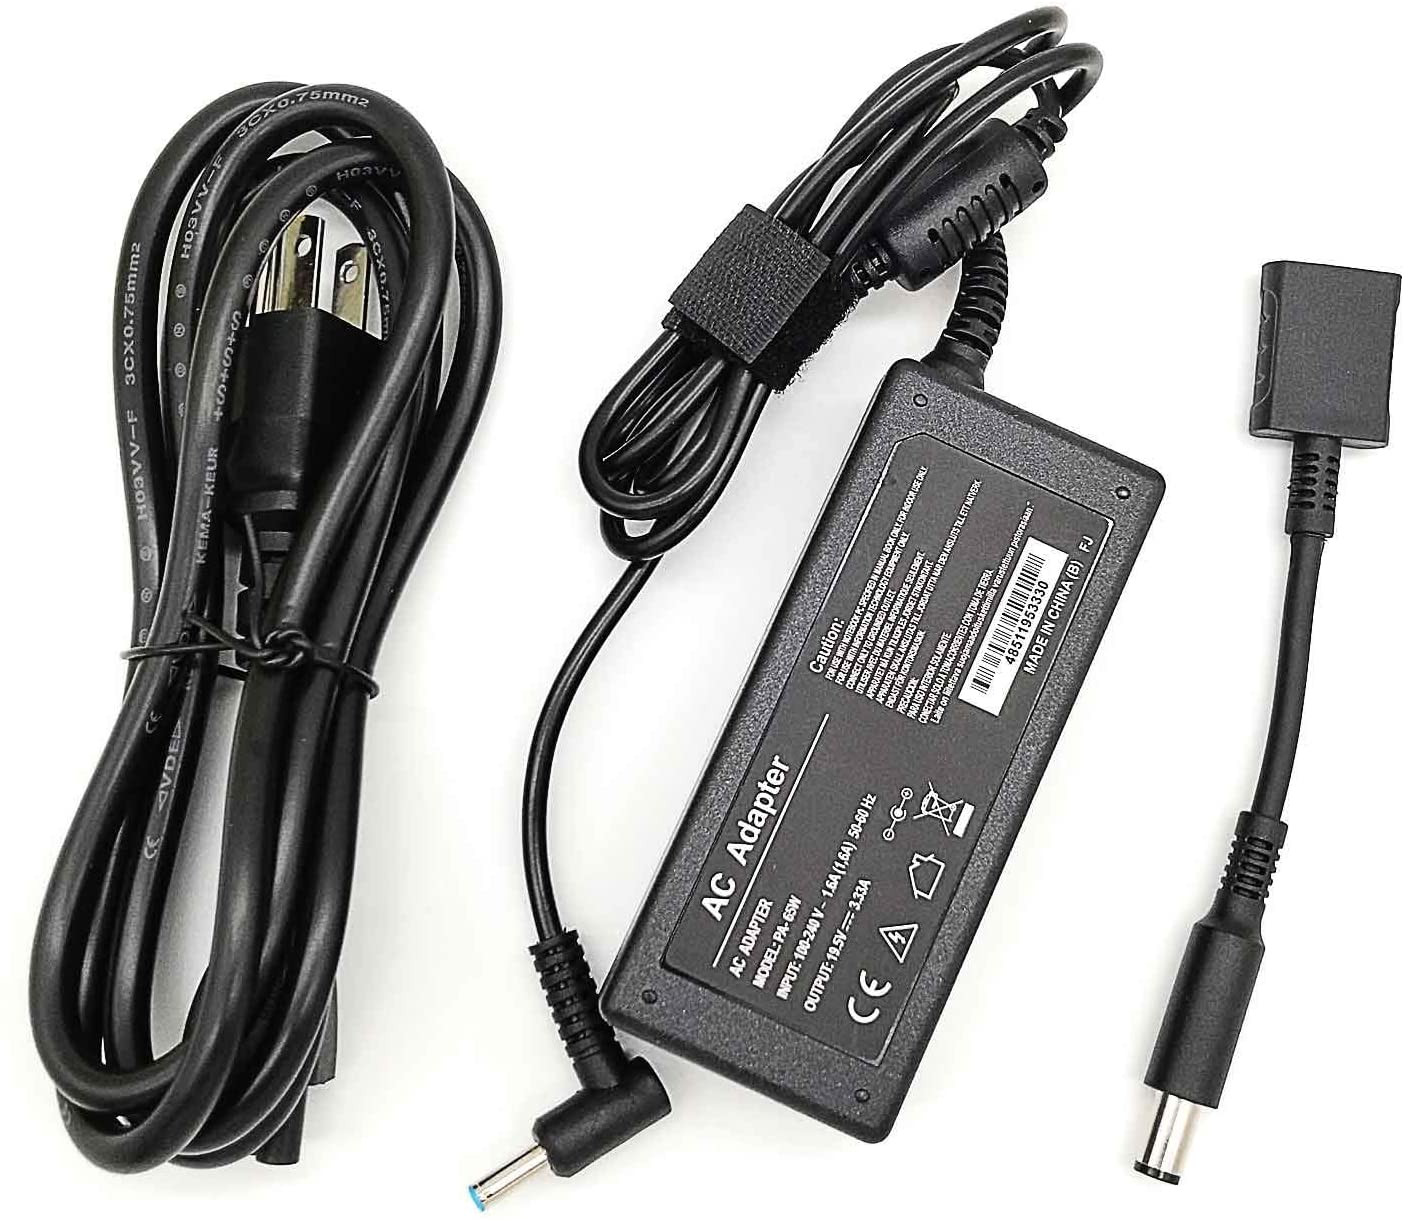 Kamesite 45W 65W 19.5V 3.33A AC Laptop Charger for HP Chromebook 14, HP Pavilion 15 17, HP Elitebook Series Blue Plug 14ft Laptop Power Adapter Supply Cord 4.5mm/3.0mm with 7.4mm/5.0mm Converter Cable